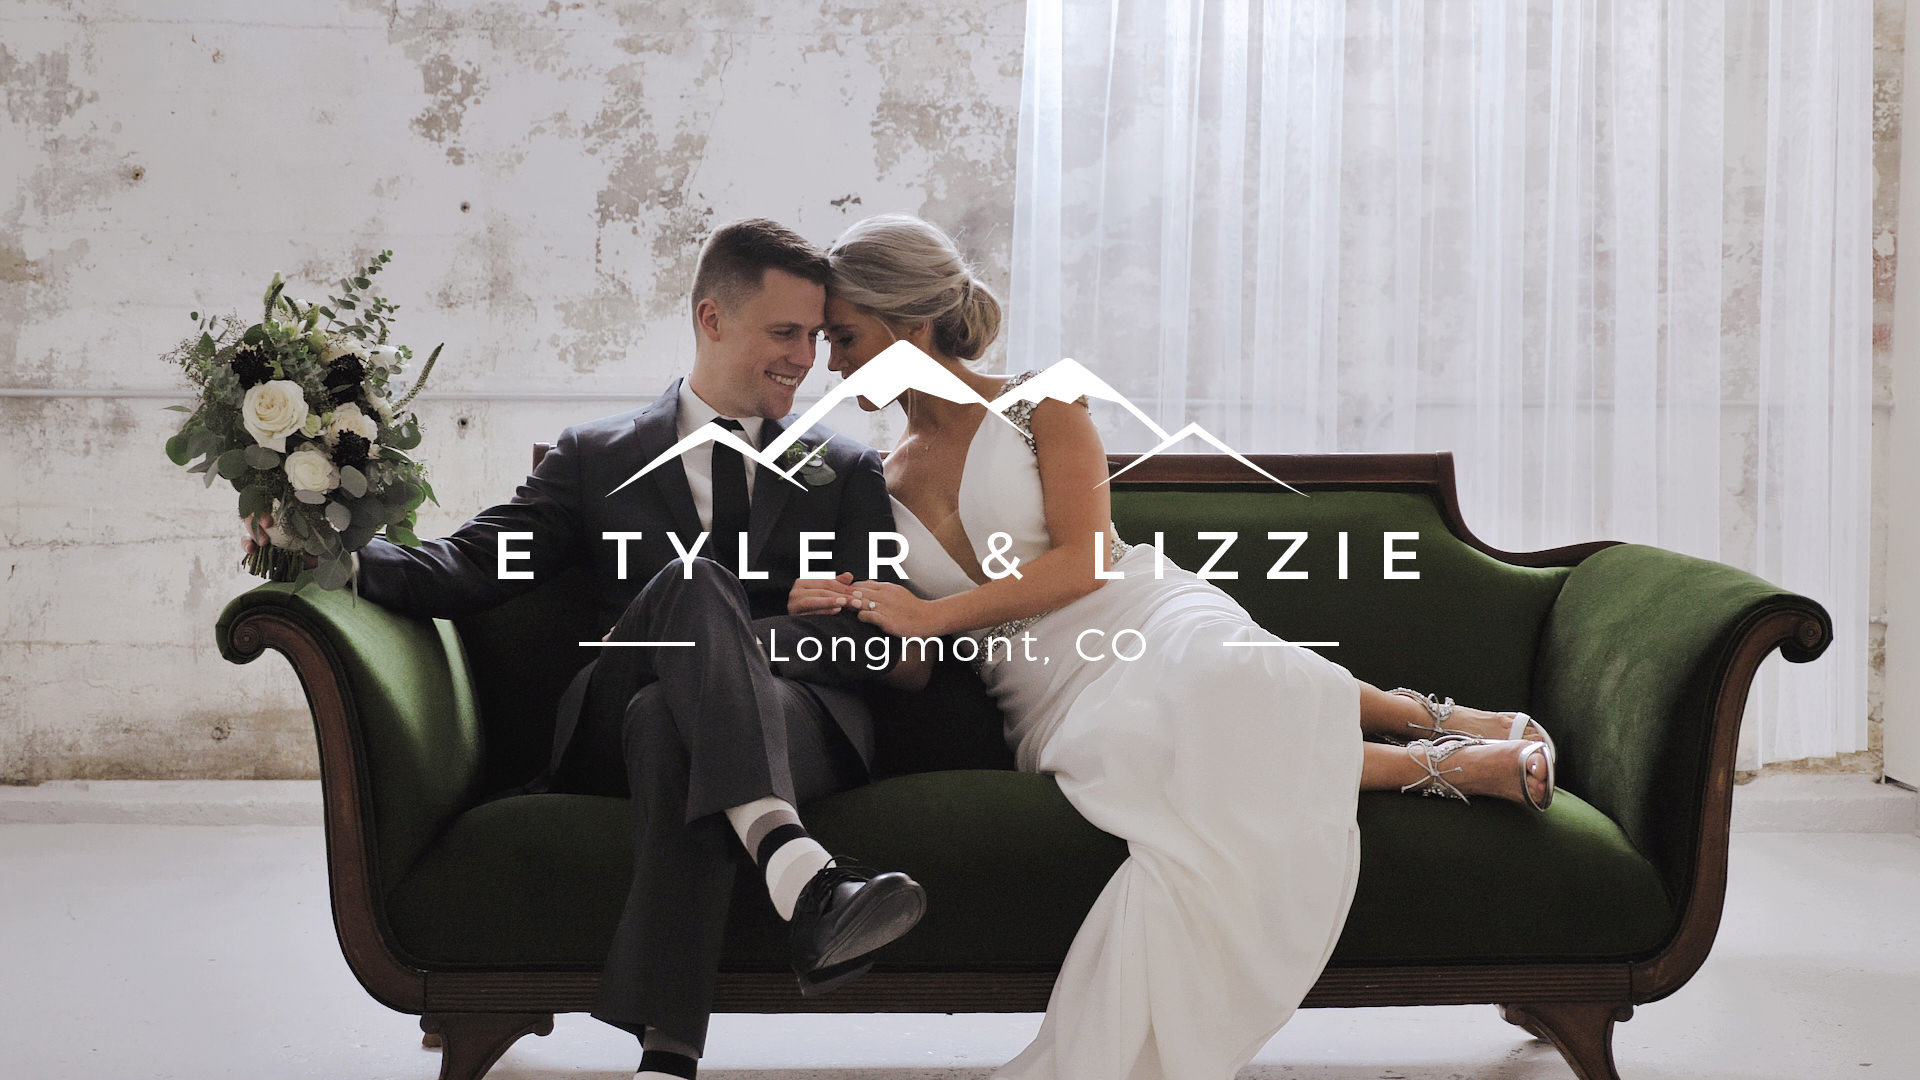 Lizzie + Tyler | Longmont, Colorado | The St. Vrains